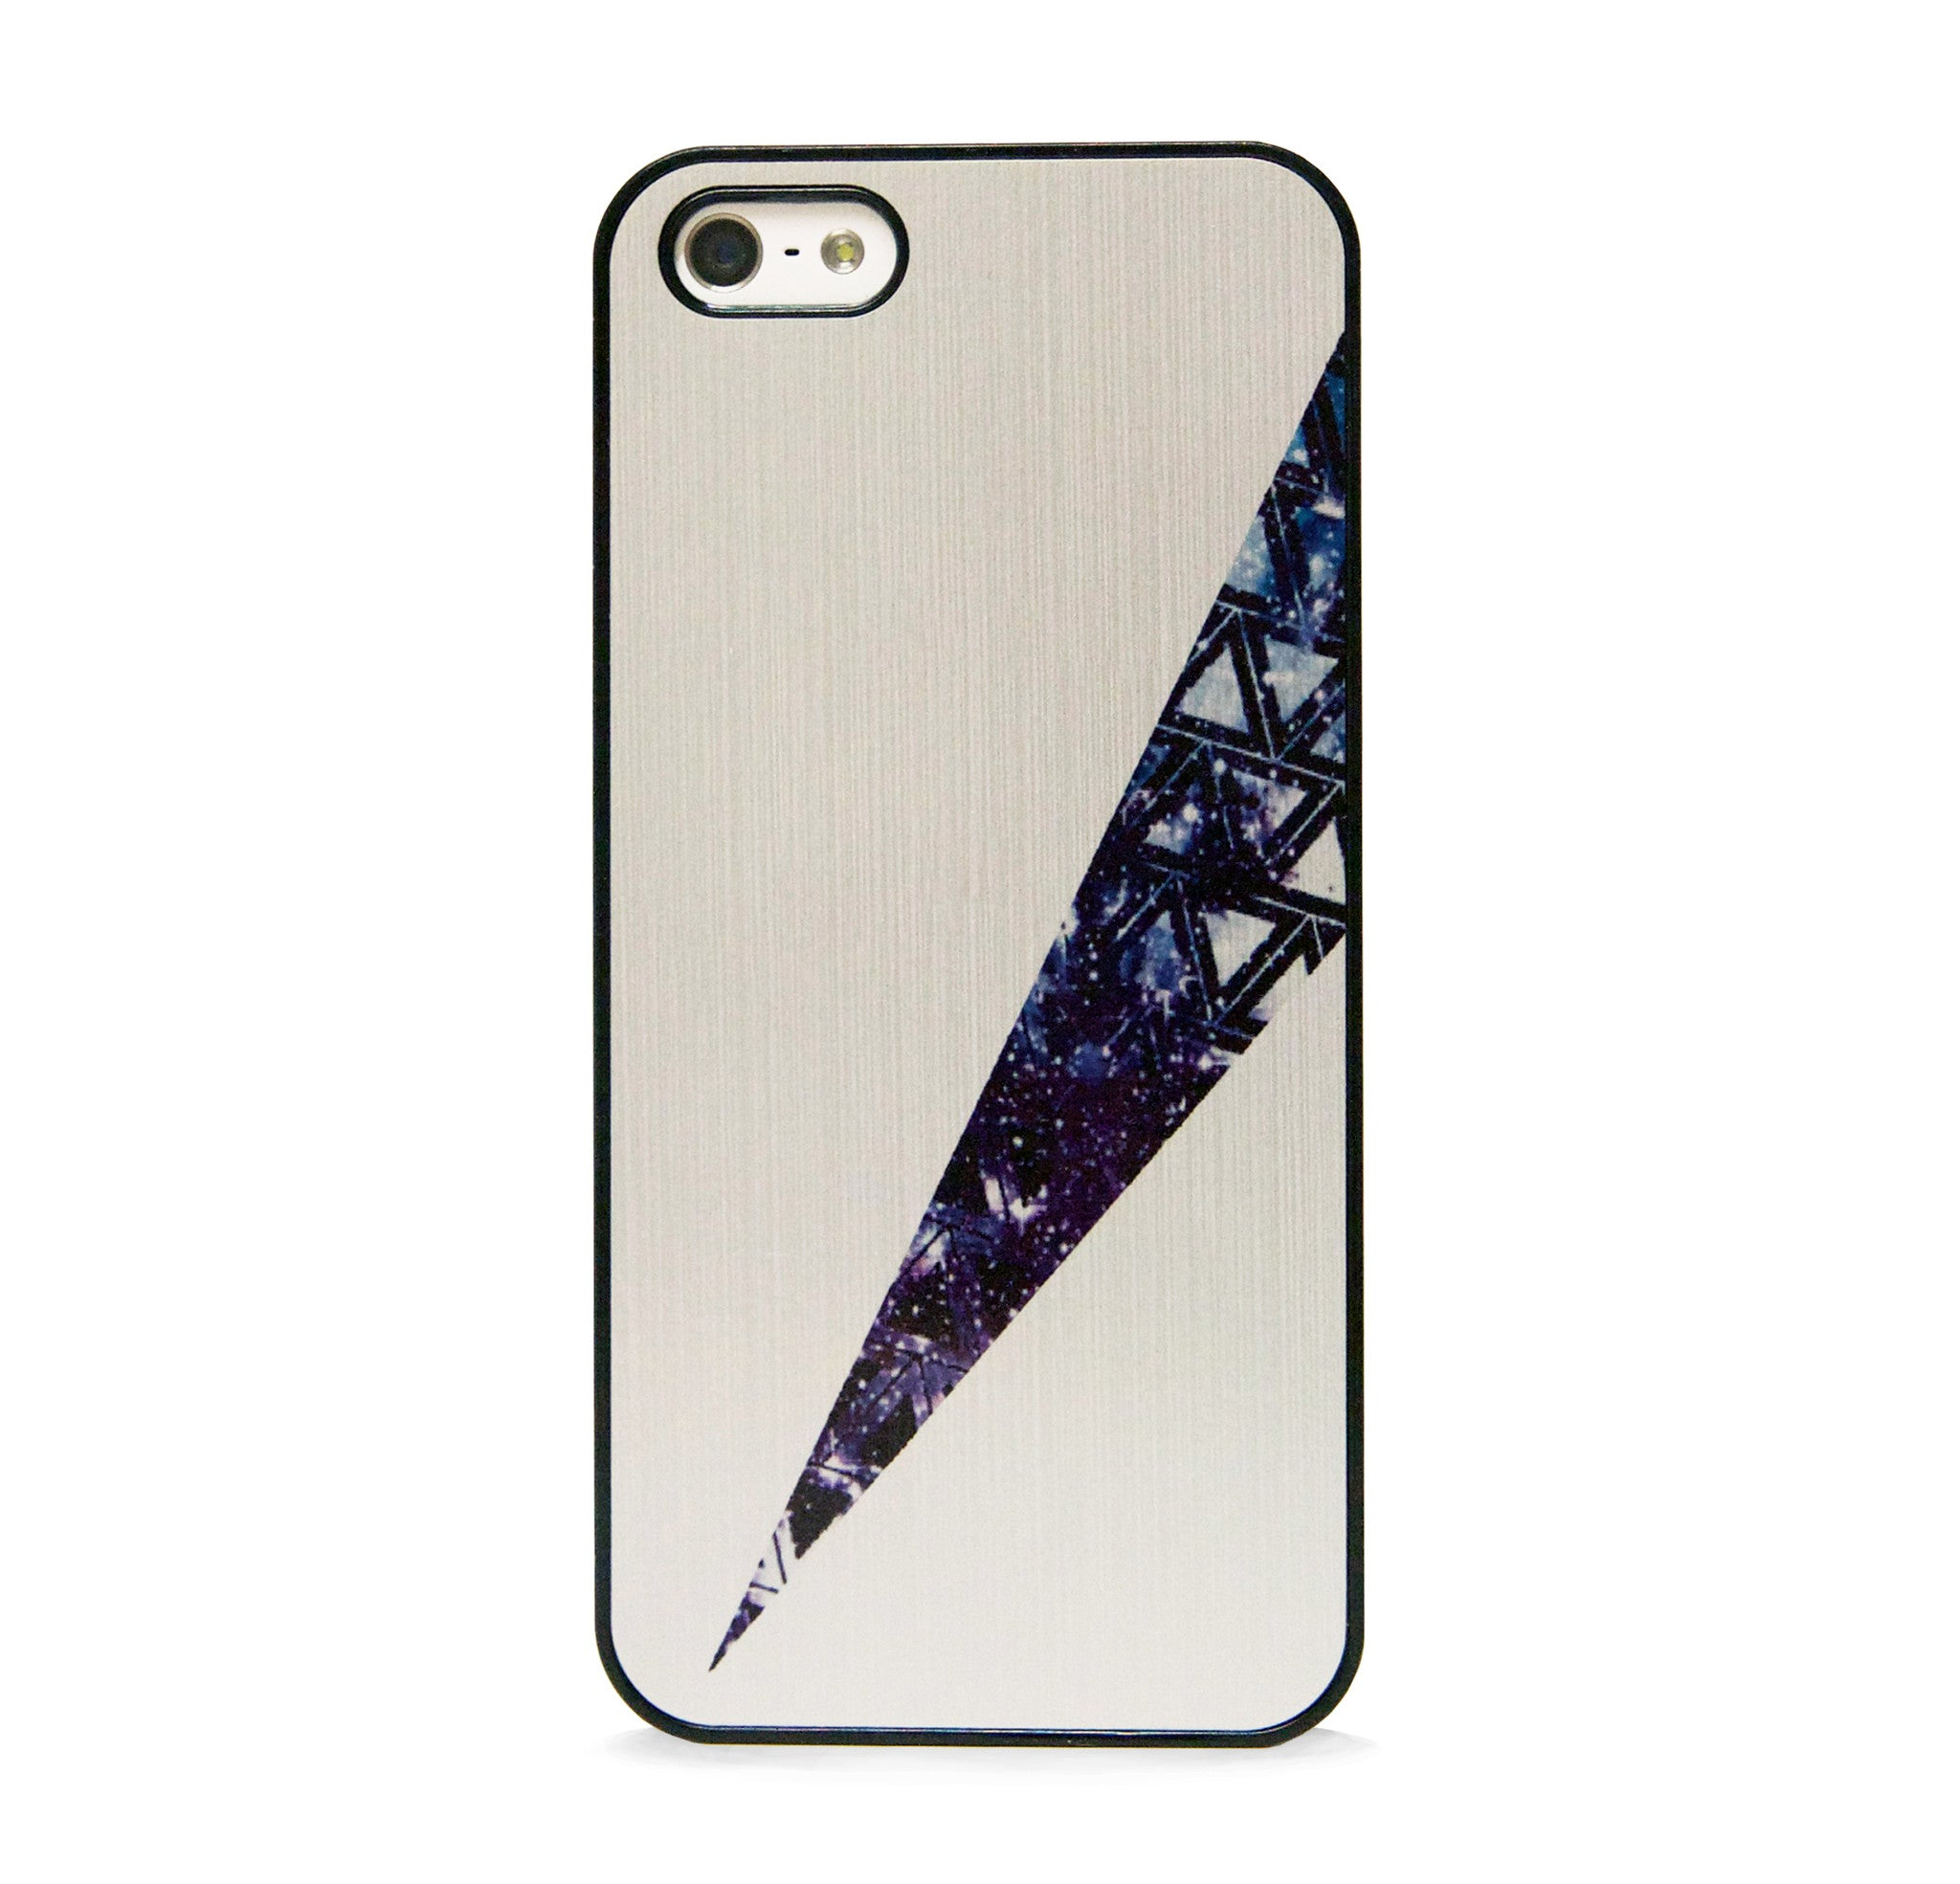 BRUSHED METAL NAVY IPHONE 5/5S CASE